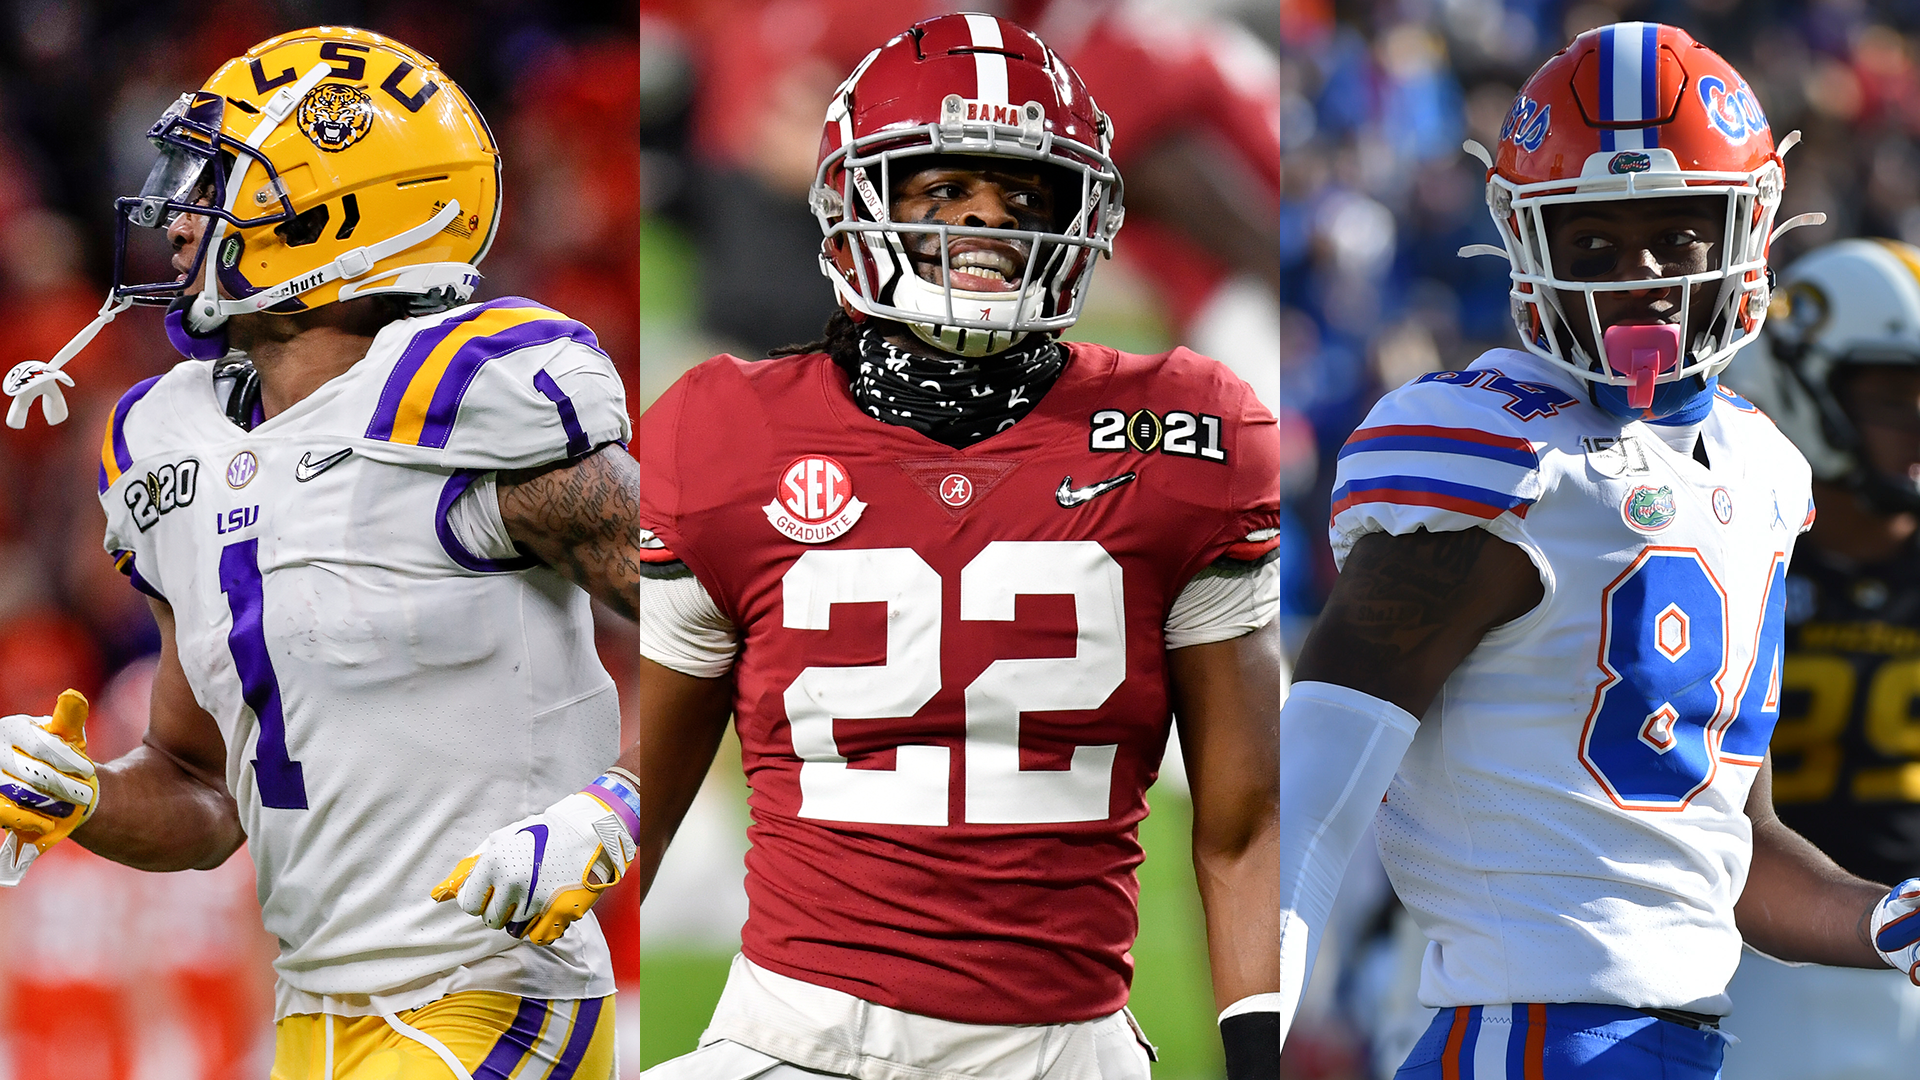 Fantasy football rookies who will make an impact in 2021 rankings